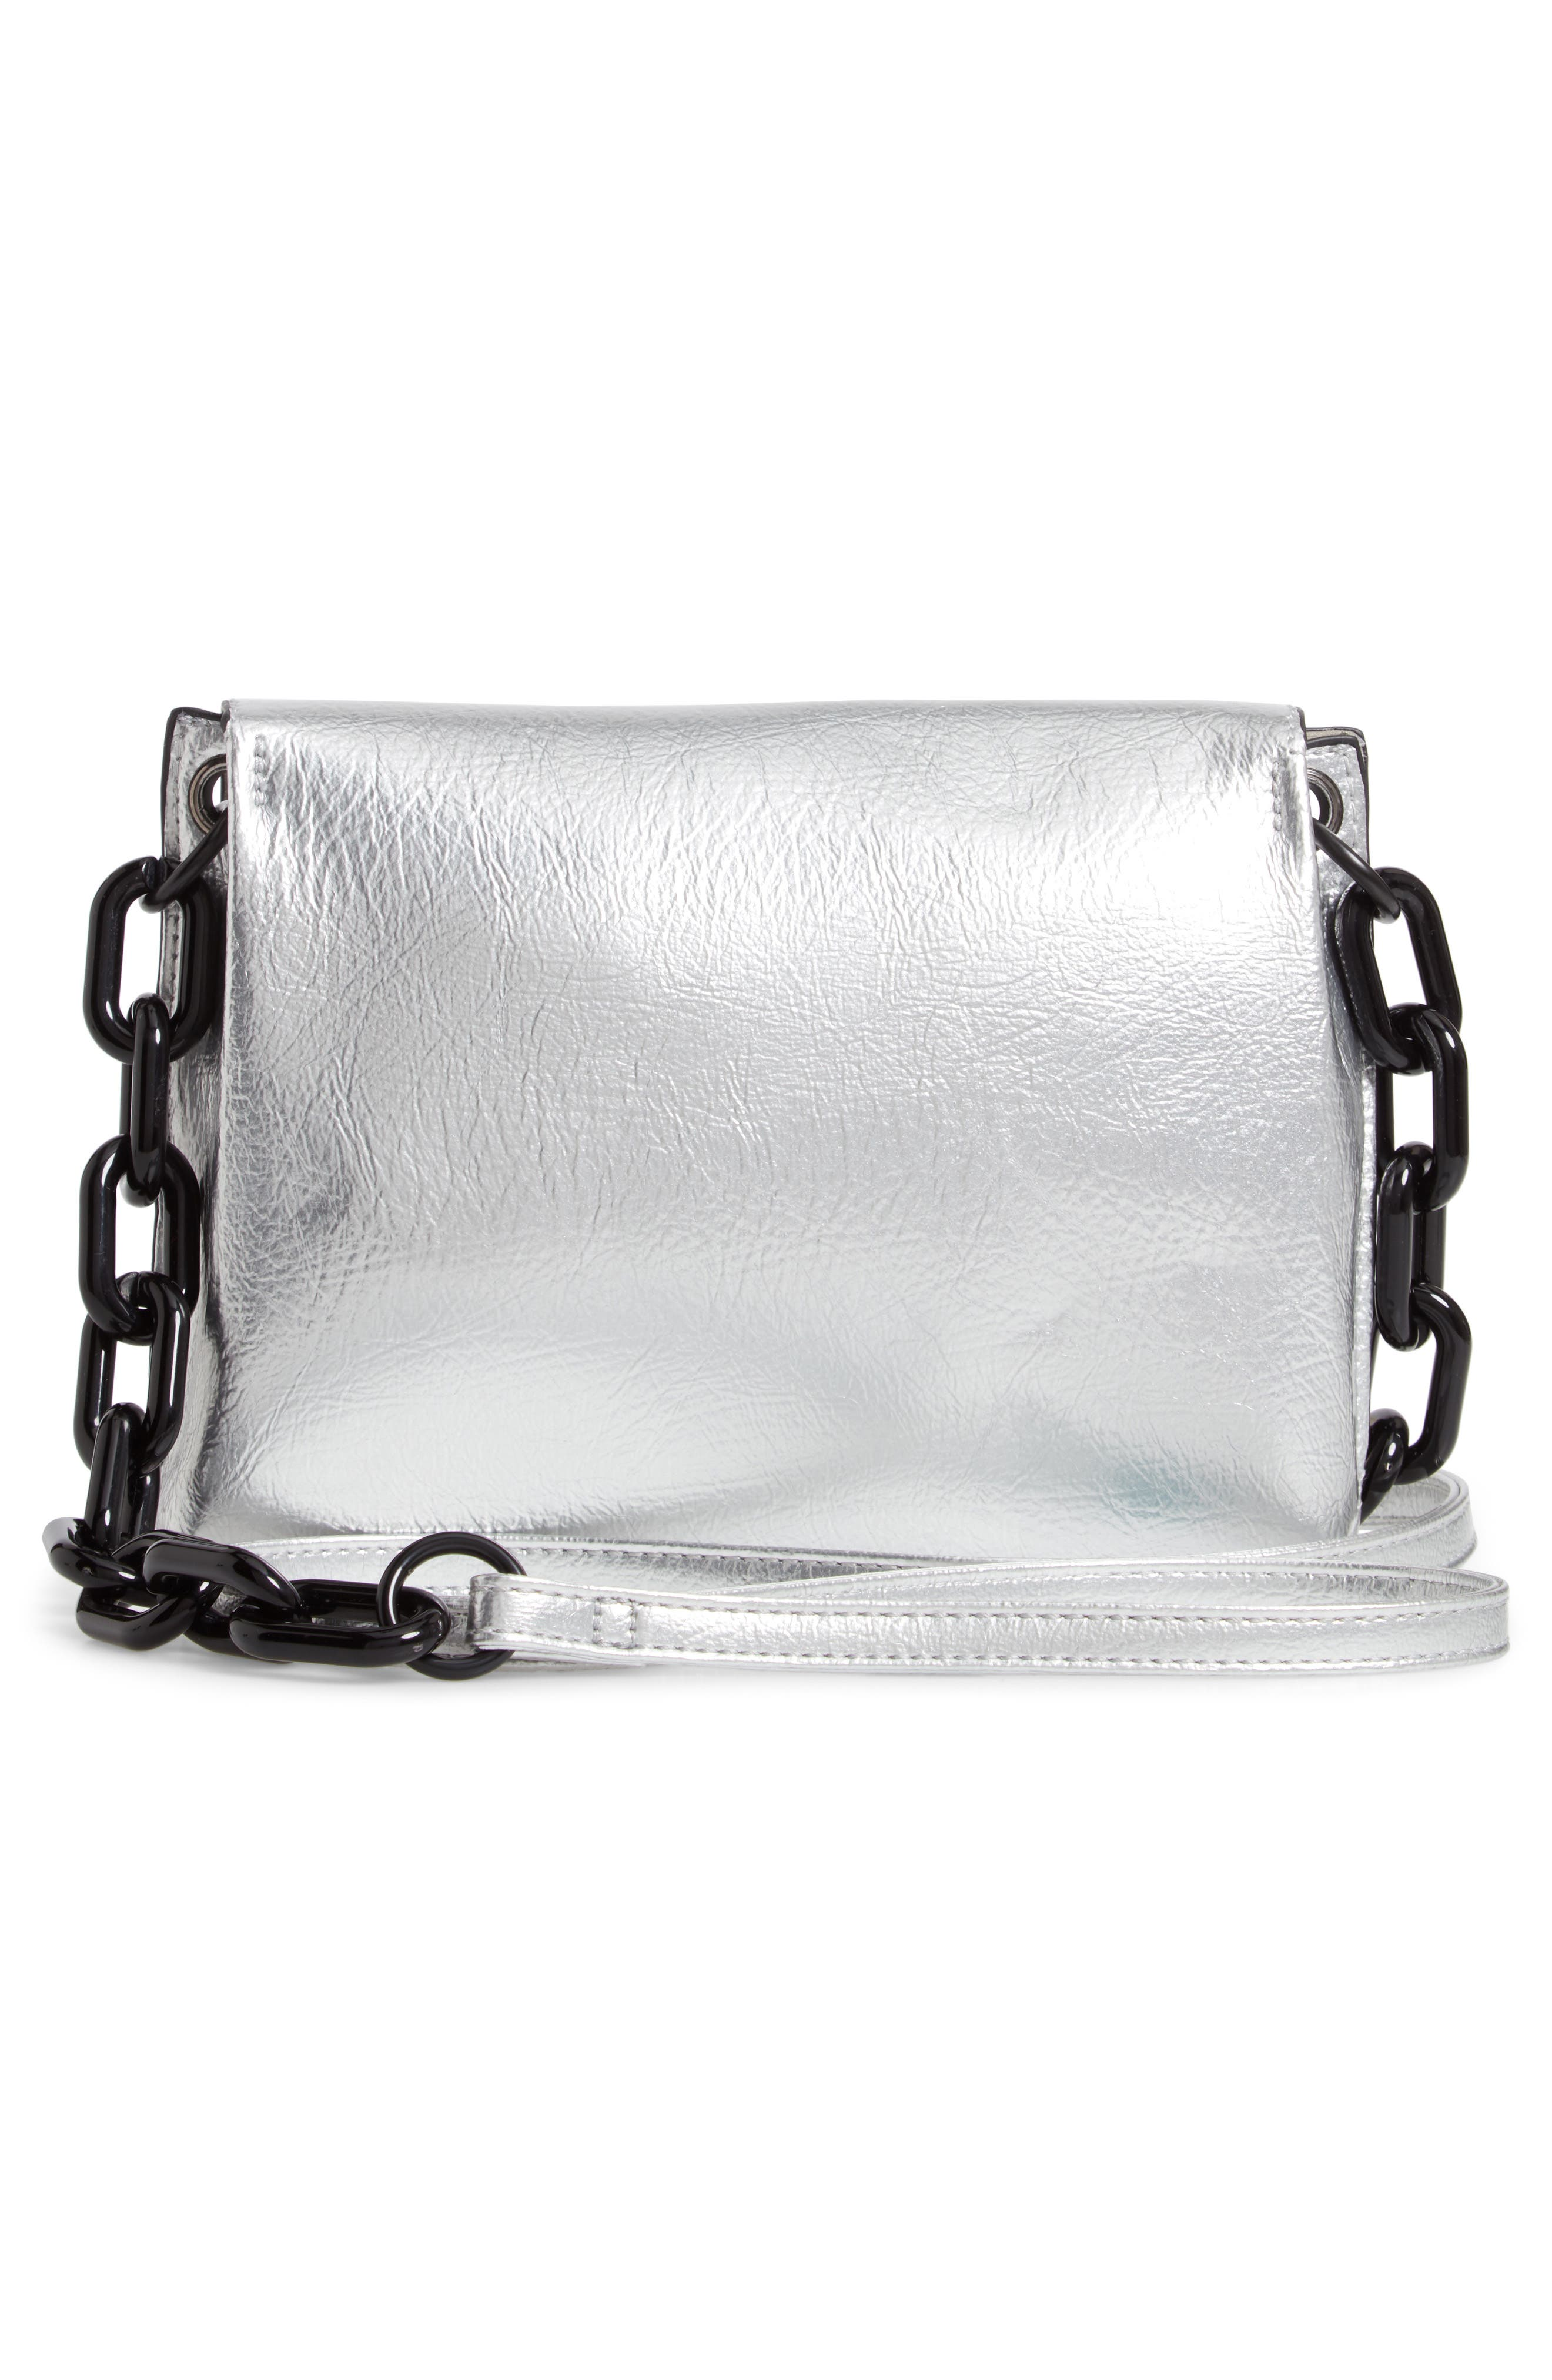 VIOLET RAY NEW YORK, Metallic Faux Leather Crossbody Bag, Alternate thumbnail 4, color, SILVER